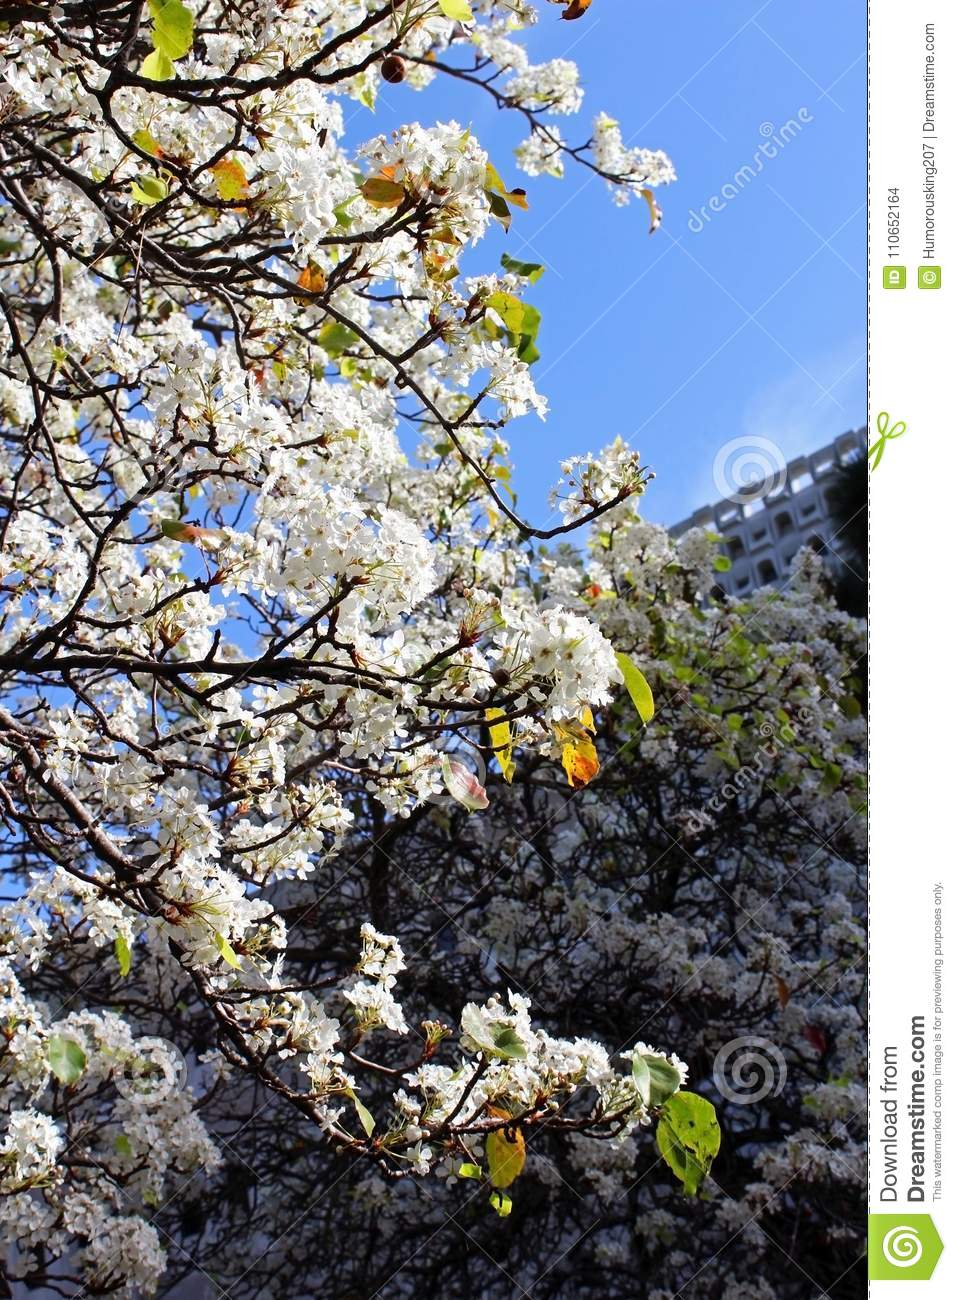 White Flowers Of Evergreen Pear Stock Photo Image Of California